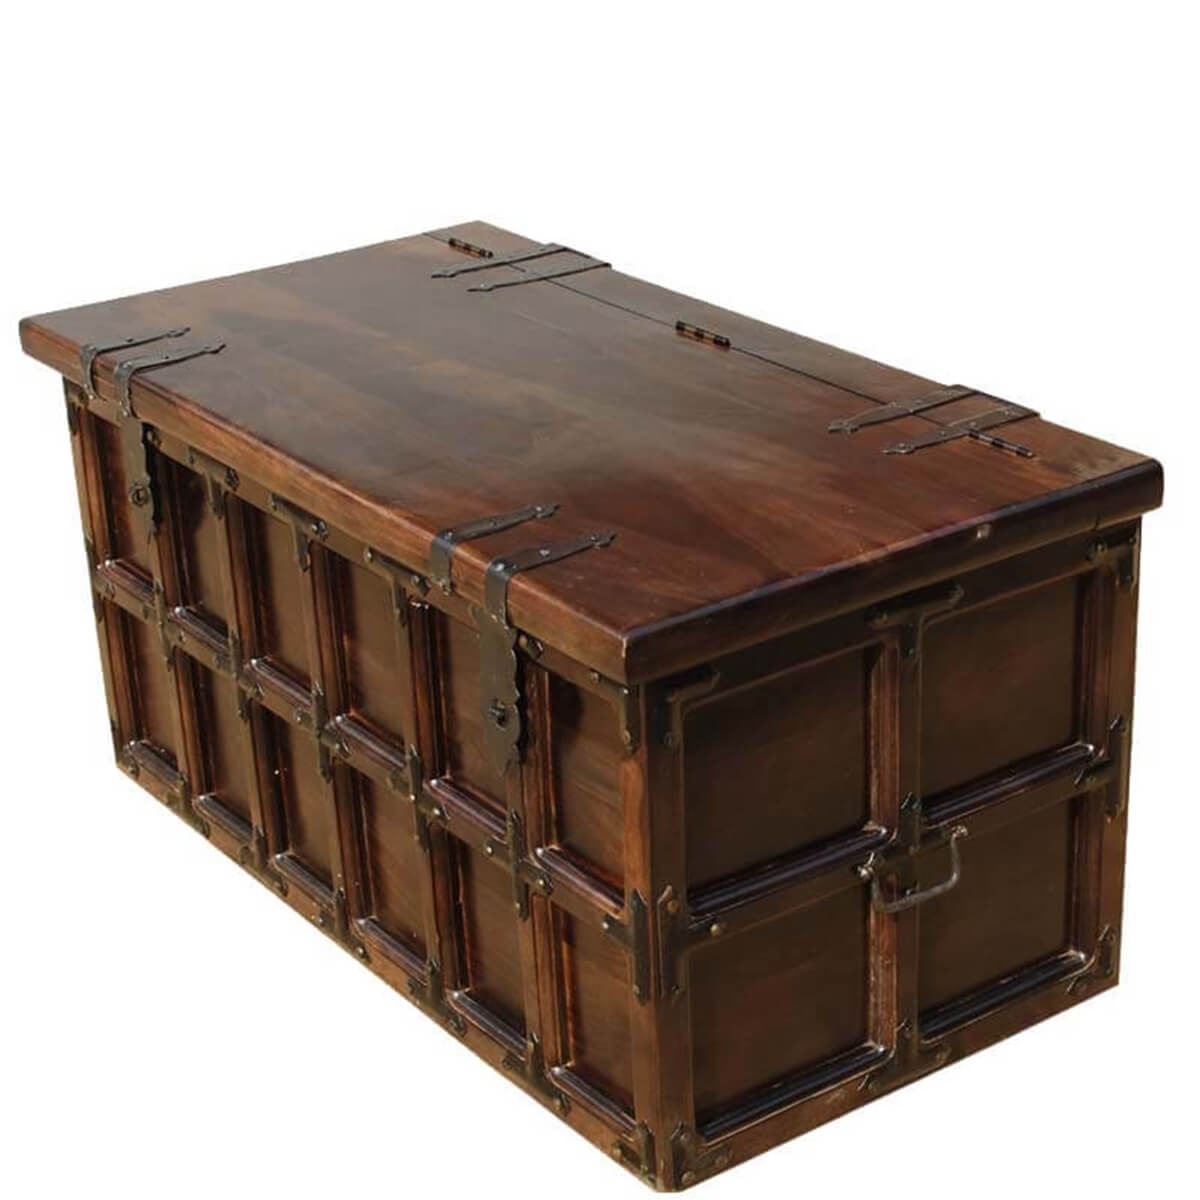 Charming Kokanee Beaufort Primitive Solid Wood U0026 Iron Coffee Table Trunk Part 14